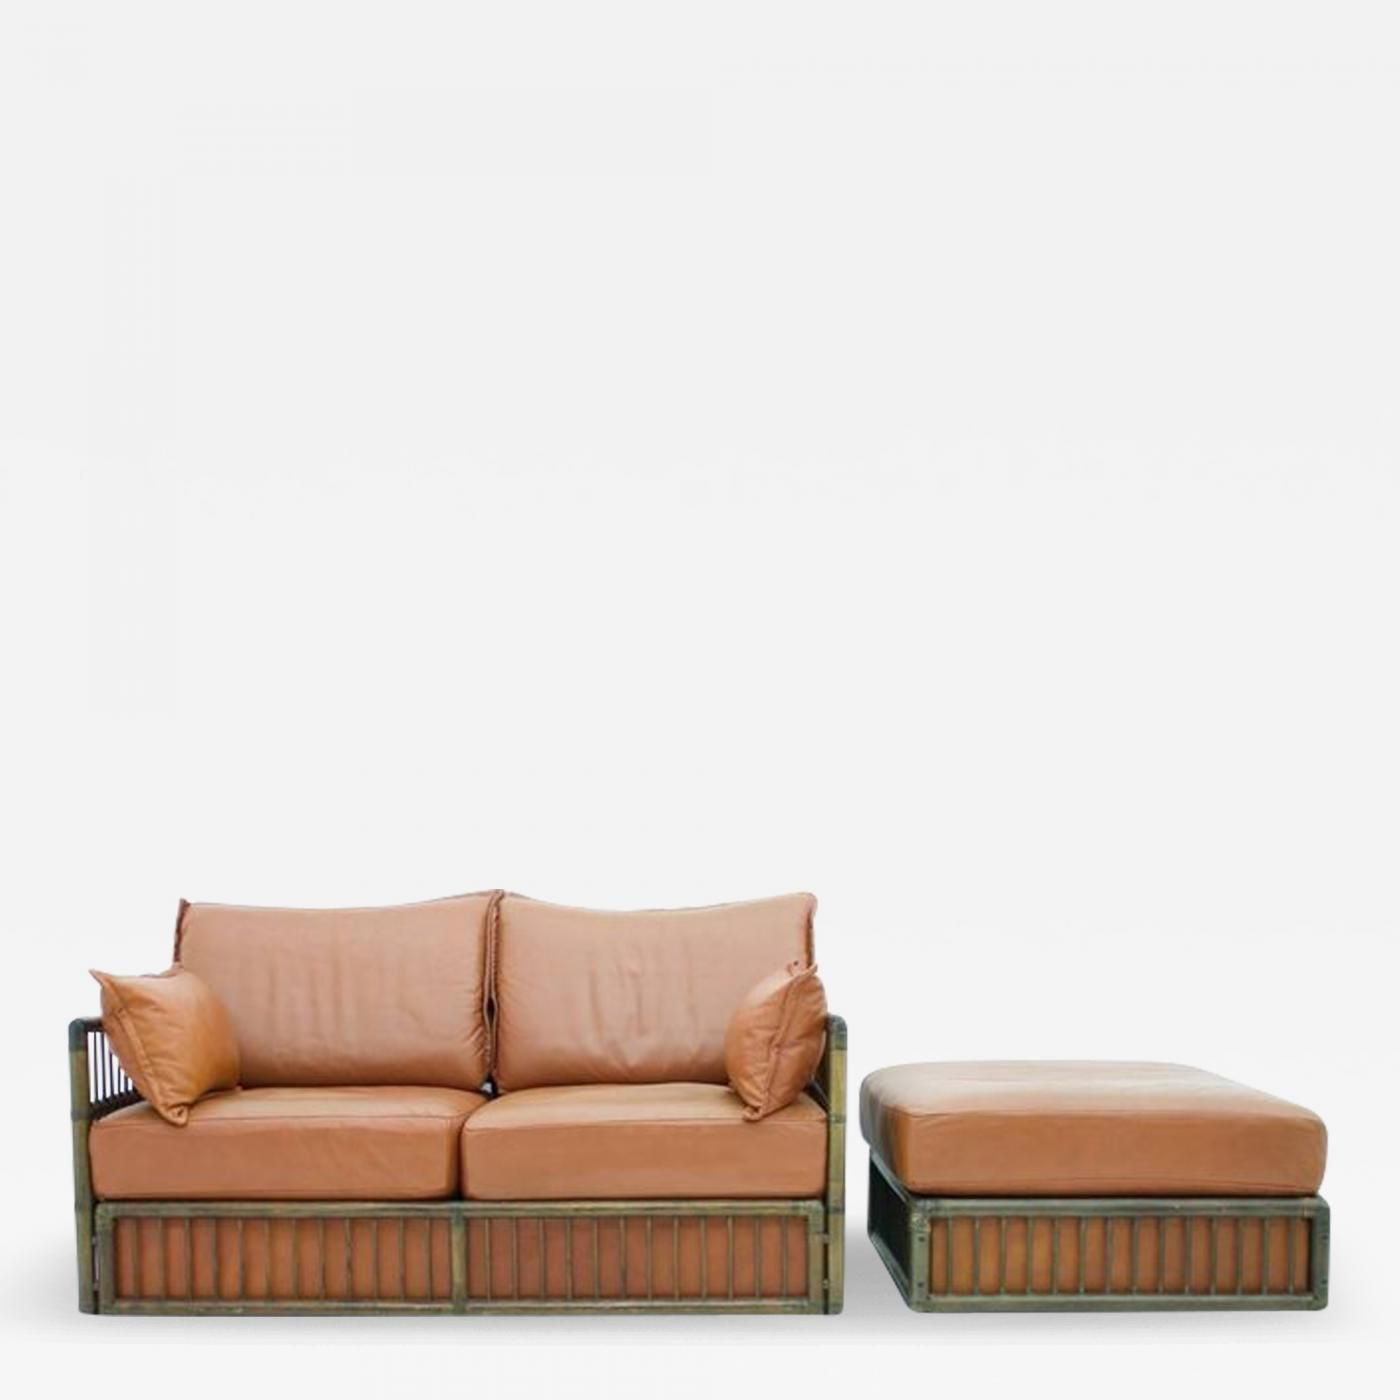 Rolf Benz Two Person Leather Sofa And Foot Stool With Rattan